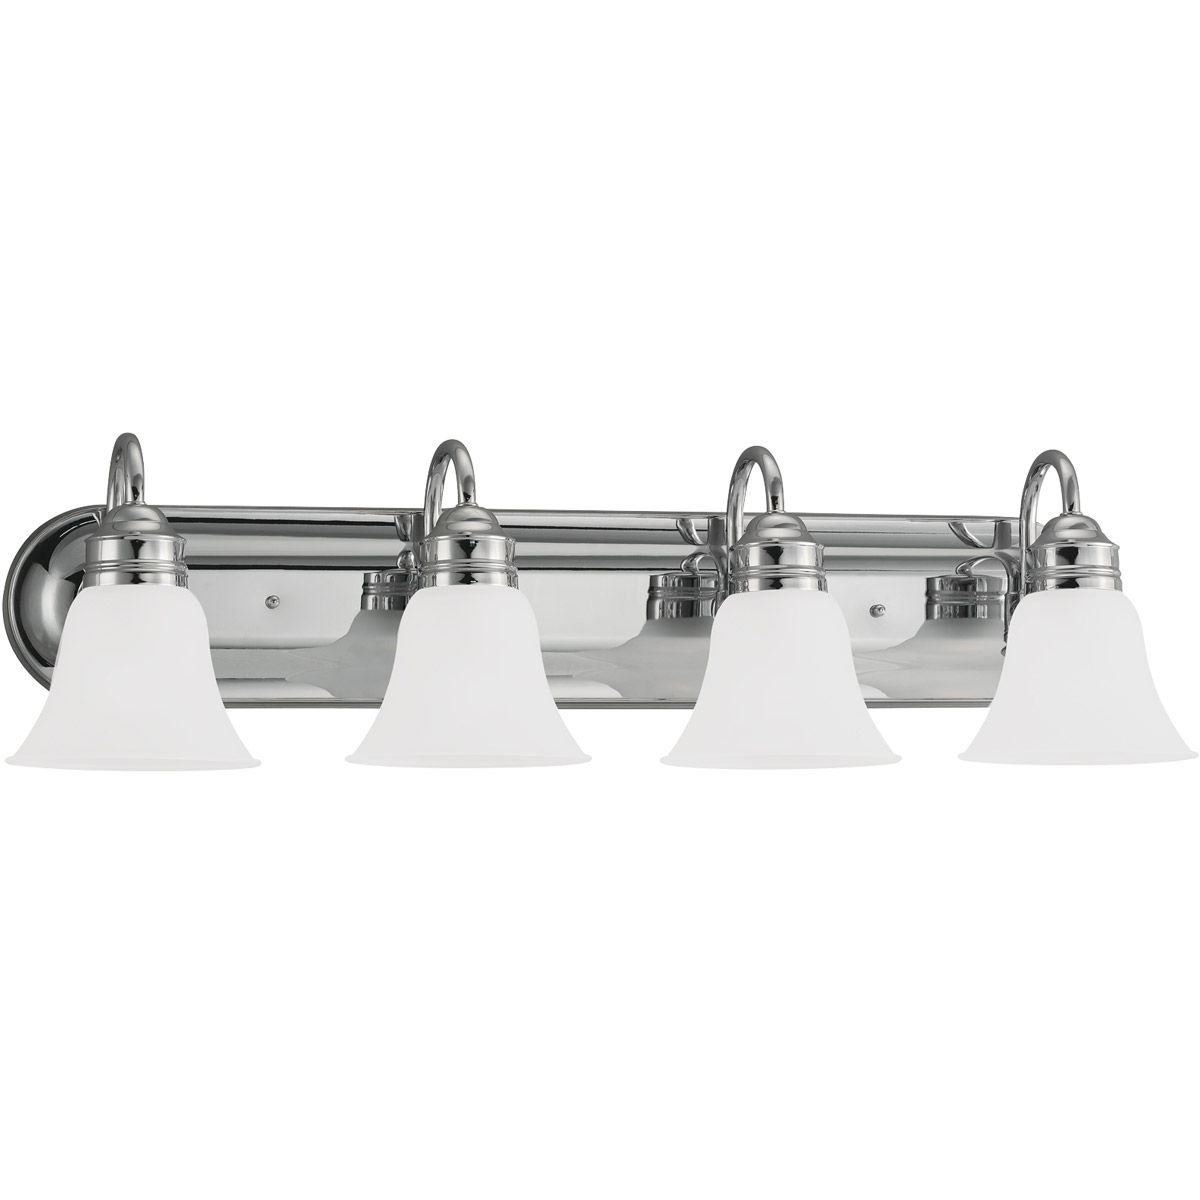 Sea Gull Lighting Gladstone 4 Light Bath Vanity in Chrome 44853-05